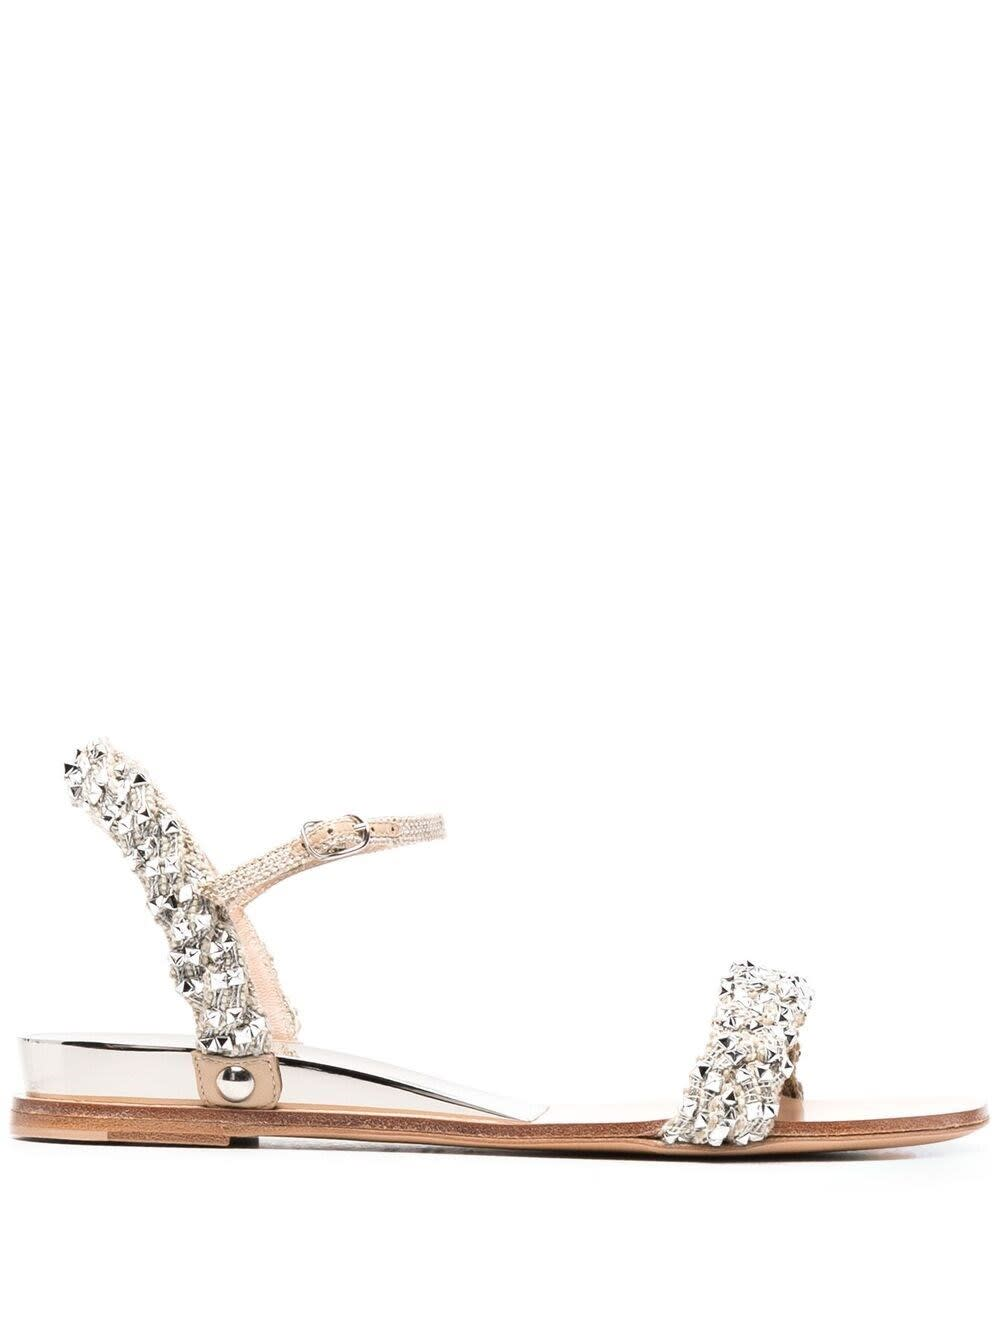 Casadei Flats SANDALS WITH SILVER STUDS